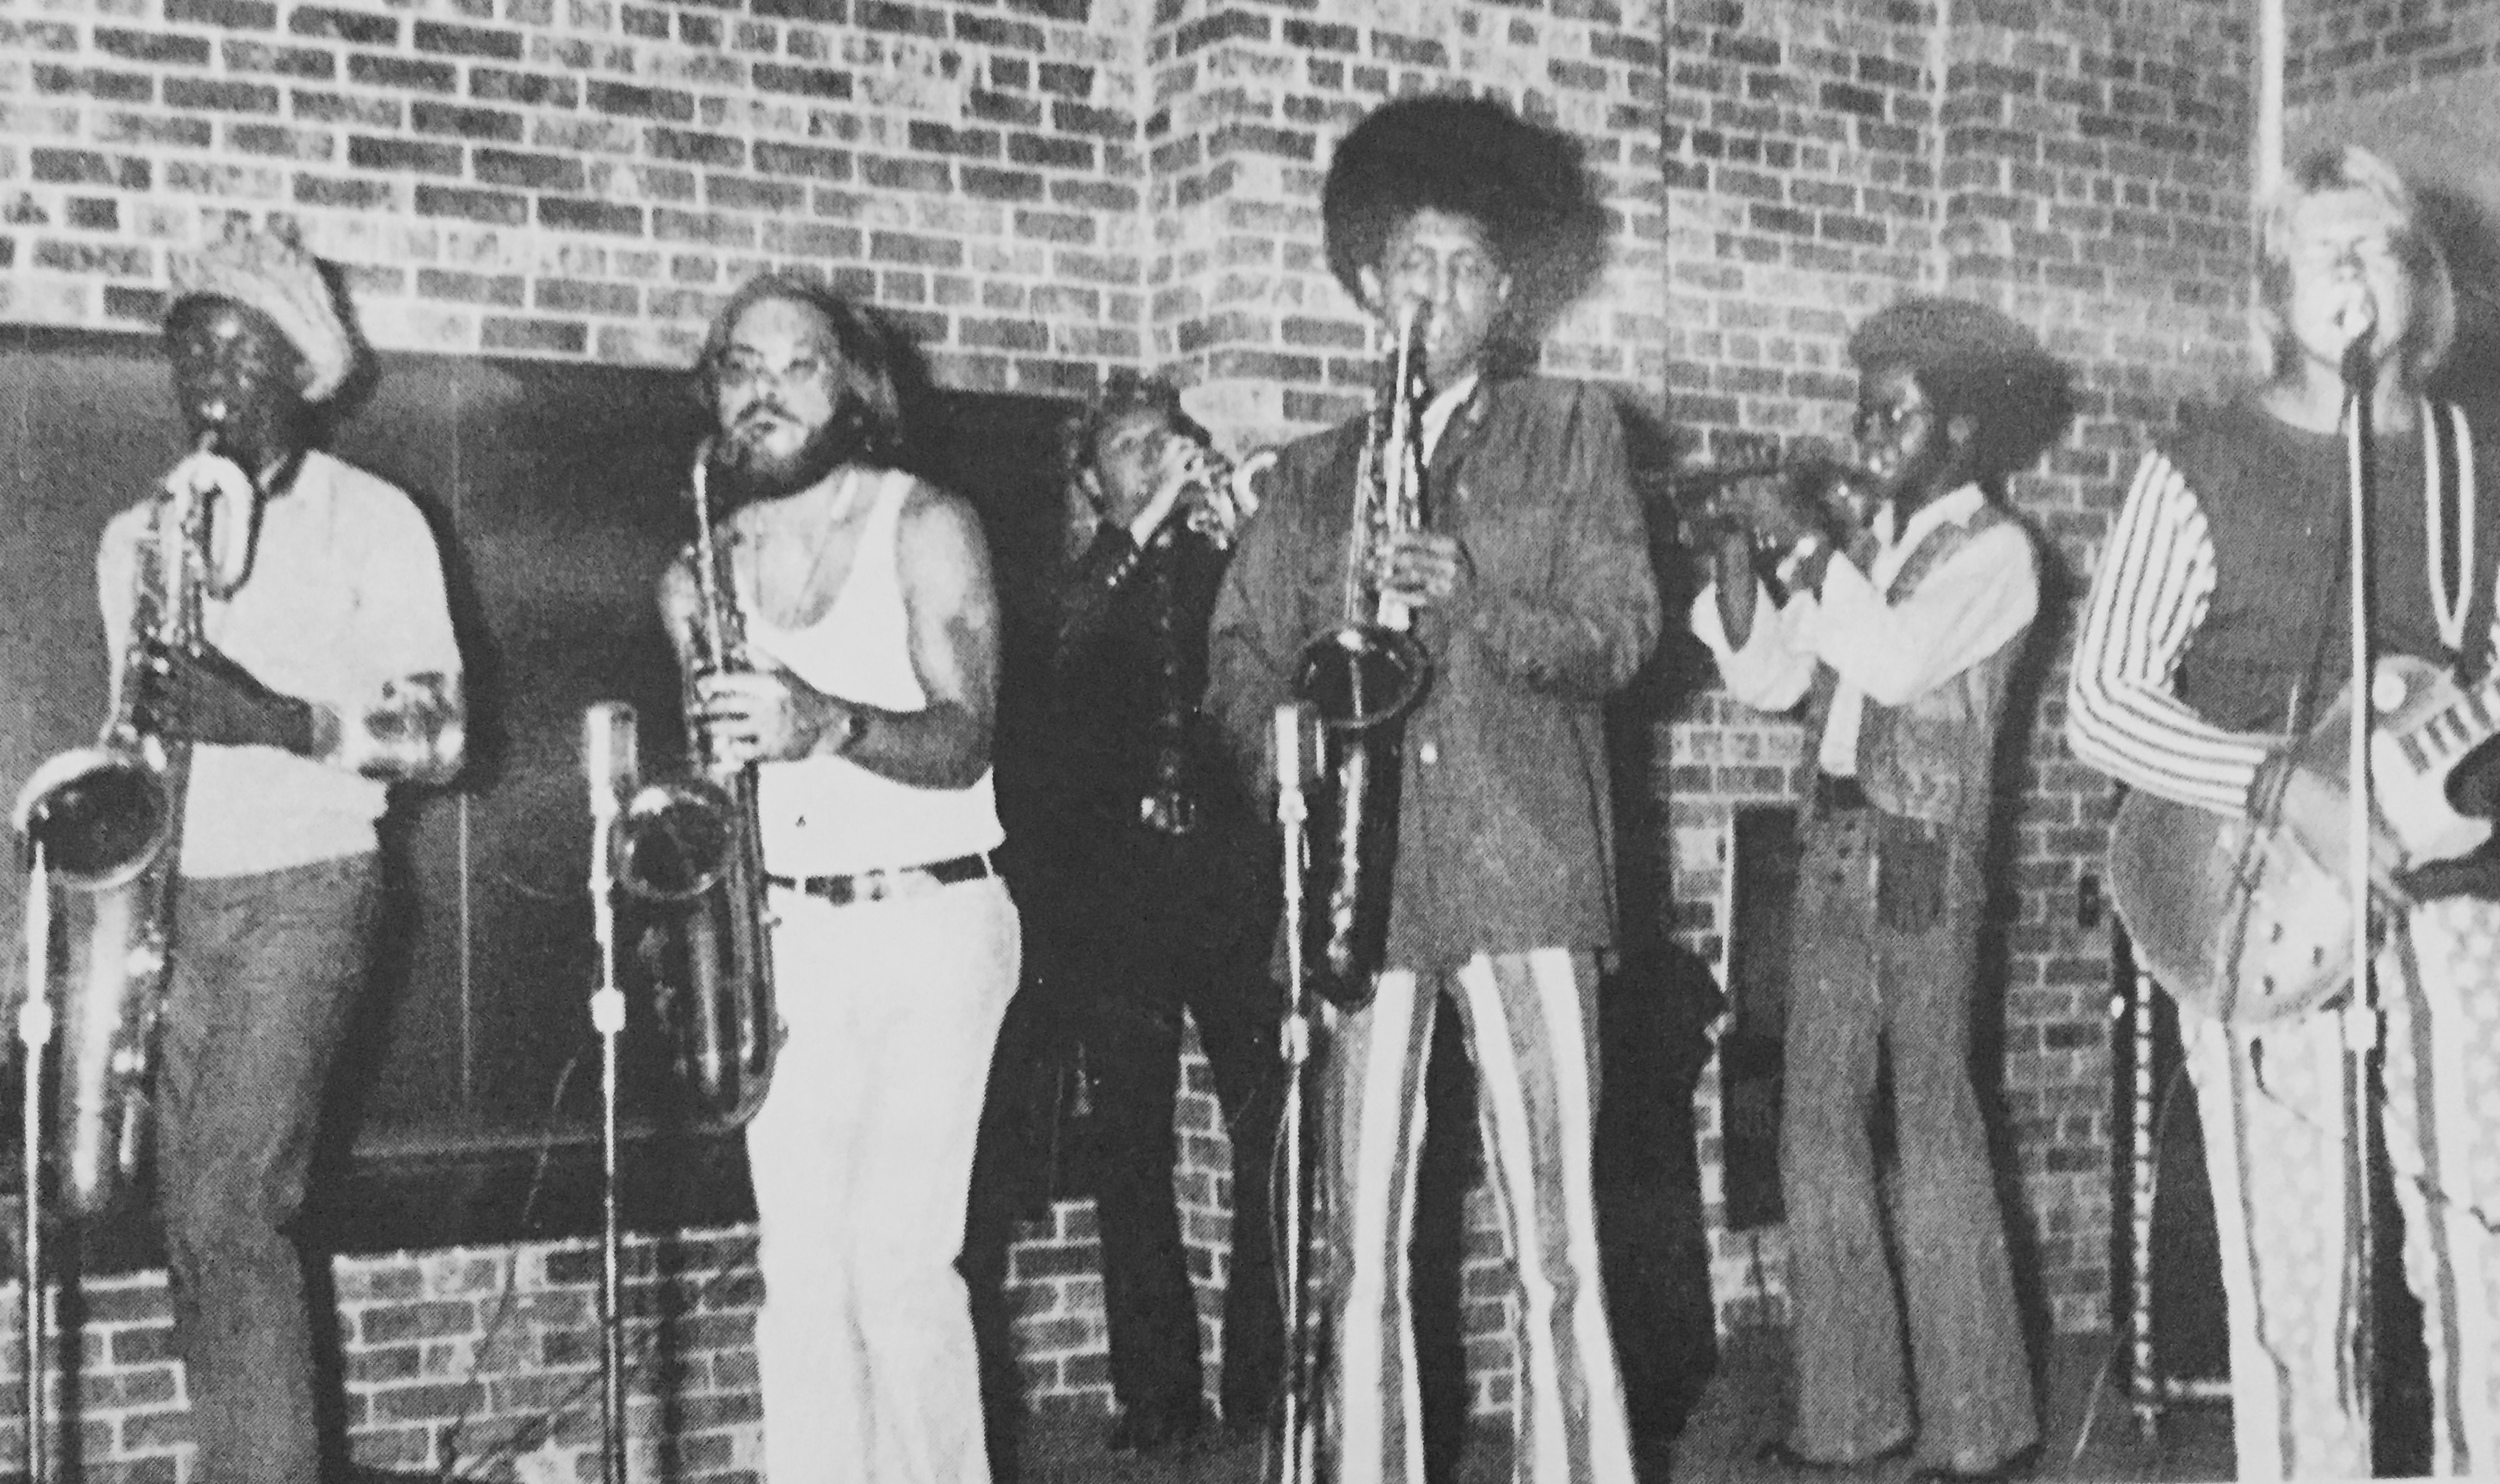 Kinda wishing I made a note of what the band was called or the name of the members or what year the photo was taken...